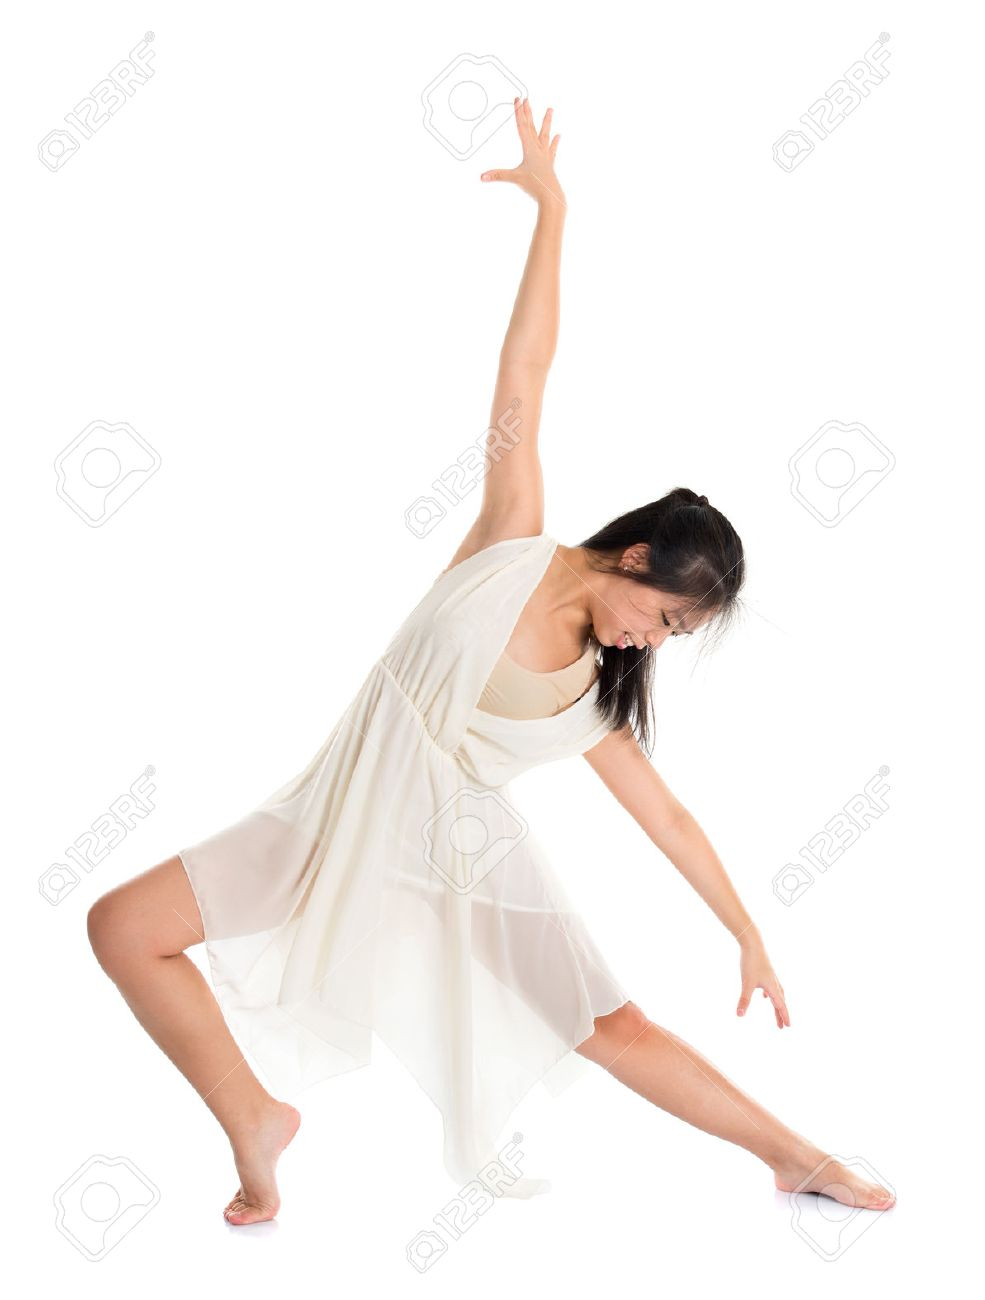 Modern Asian teen contemporary dancer poses in front of the studio background, full length isolated white. - 22284217